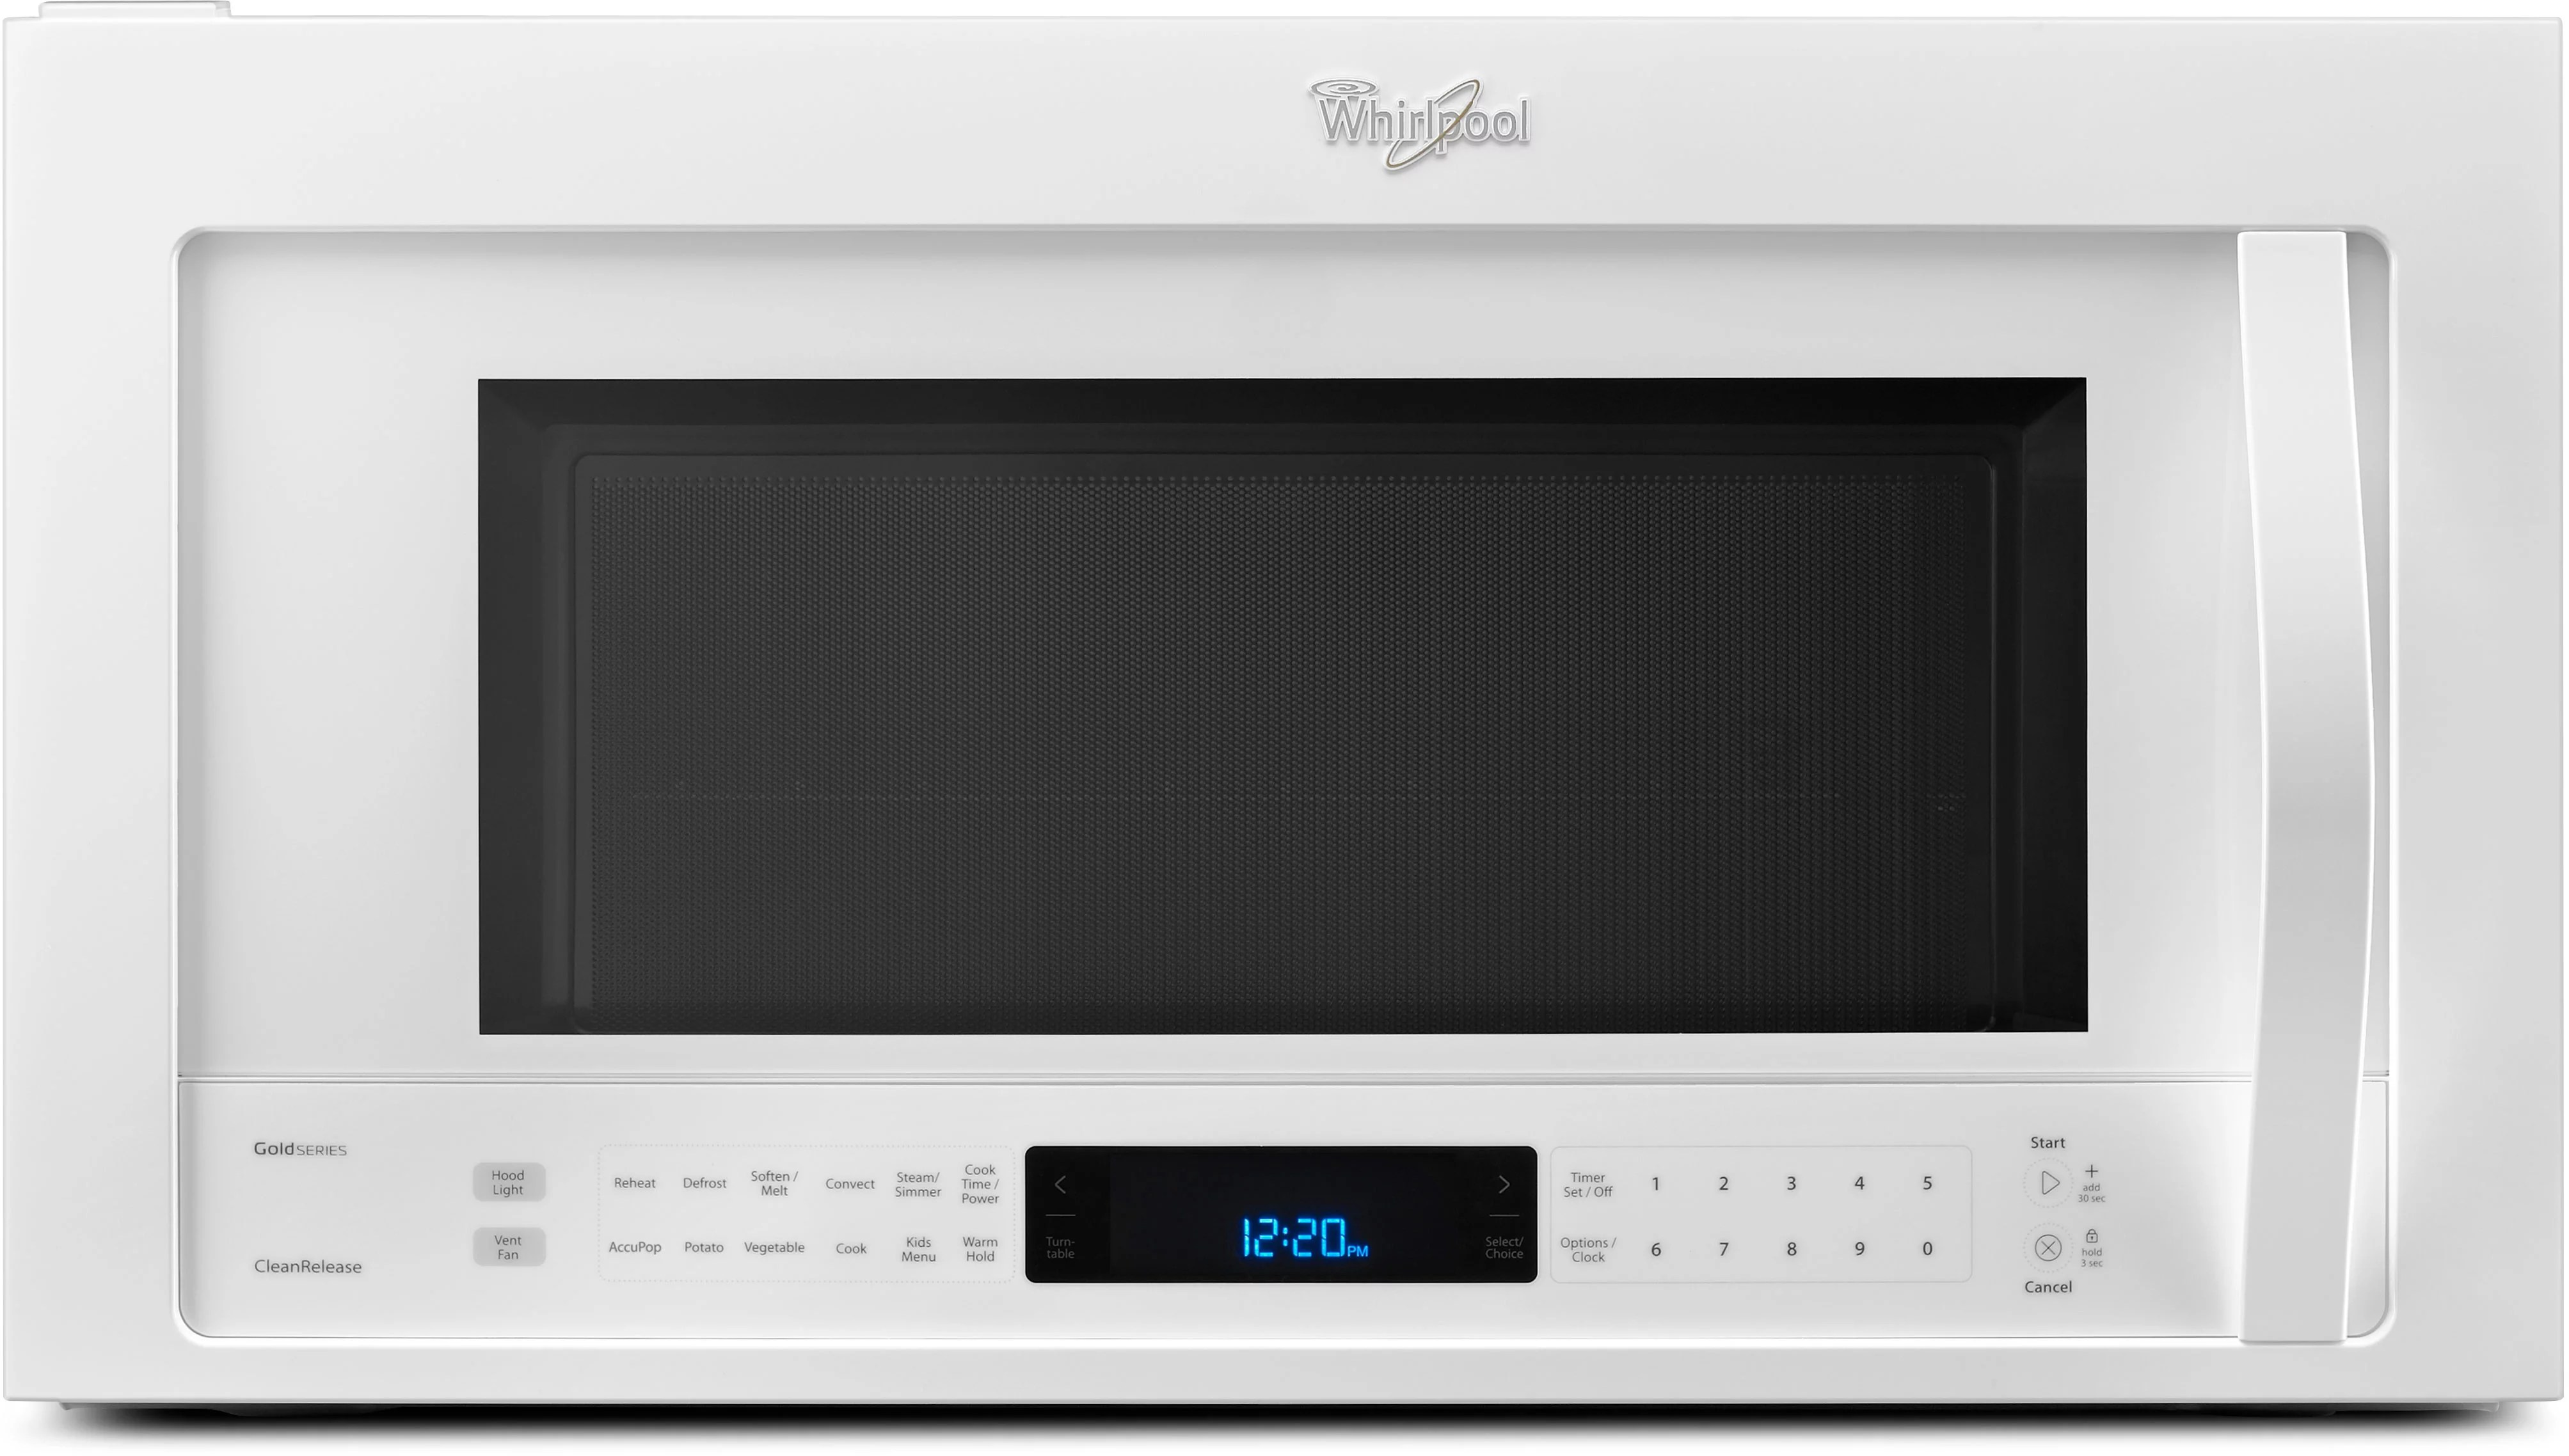 Whirlpool WMH76719CW 19 Cu Ft Over The Range Microwave Oven With 400 CFM Venting System True